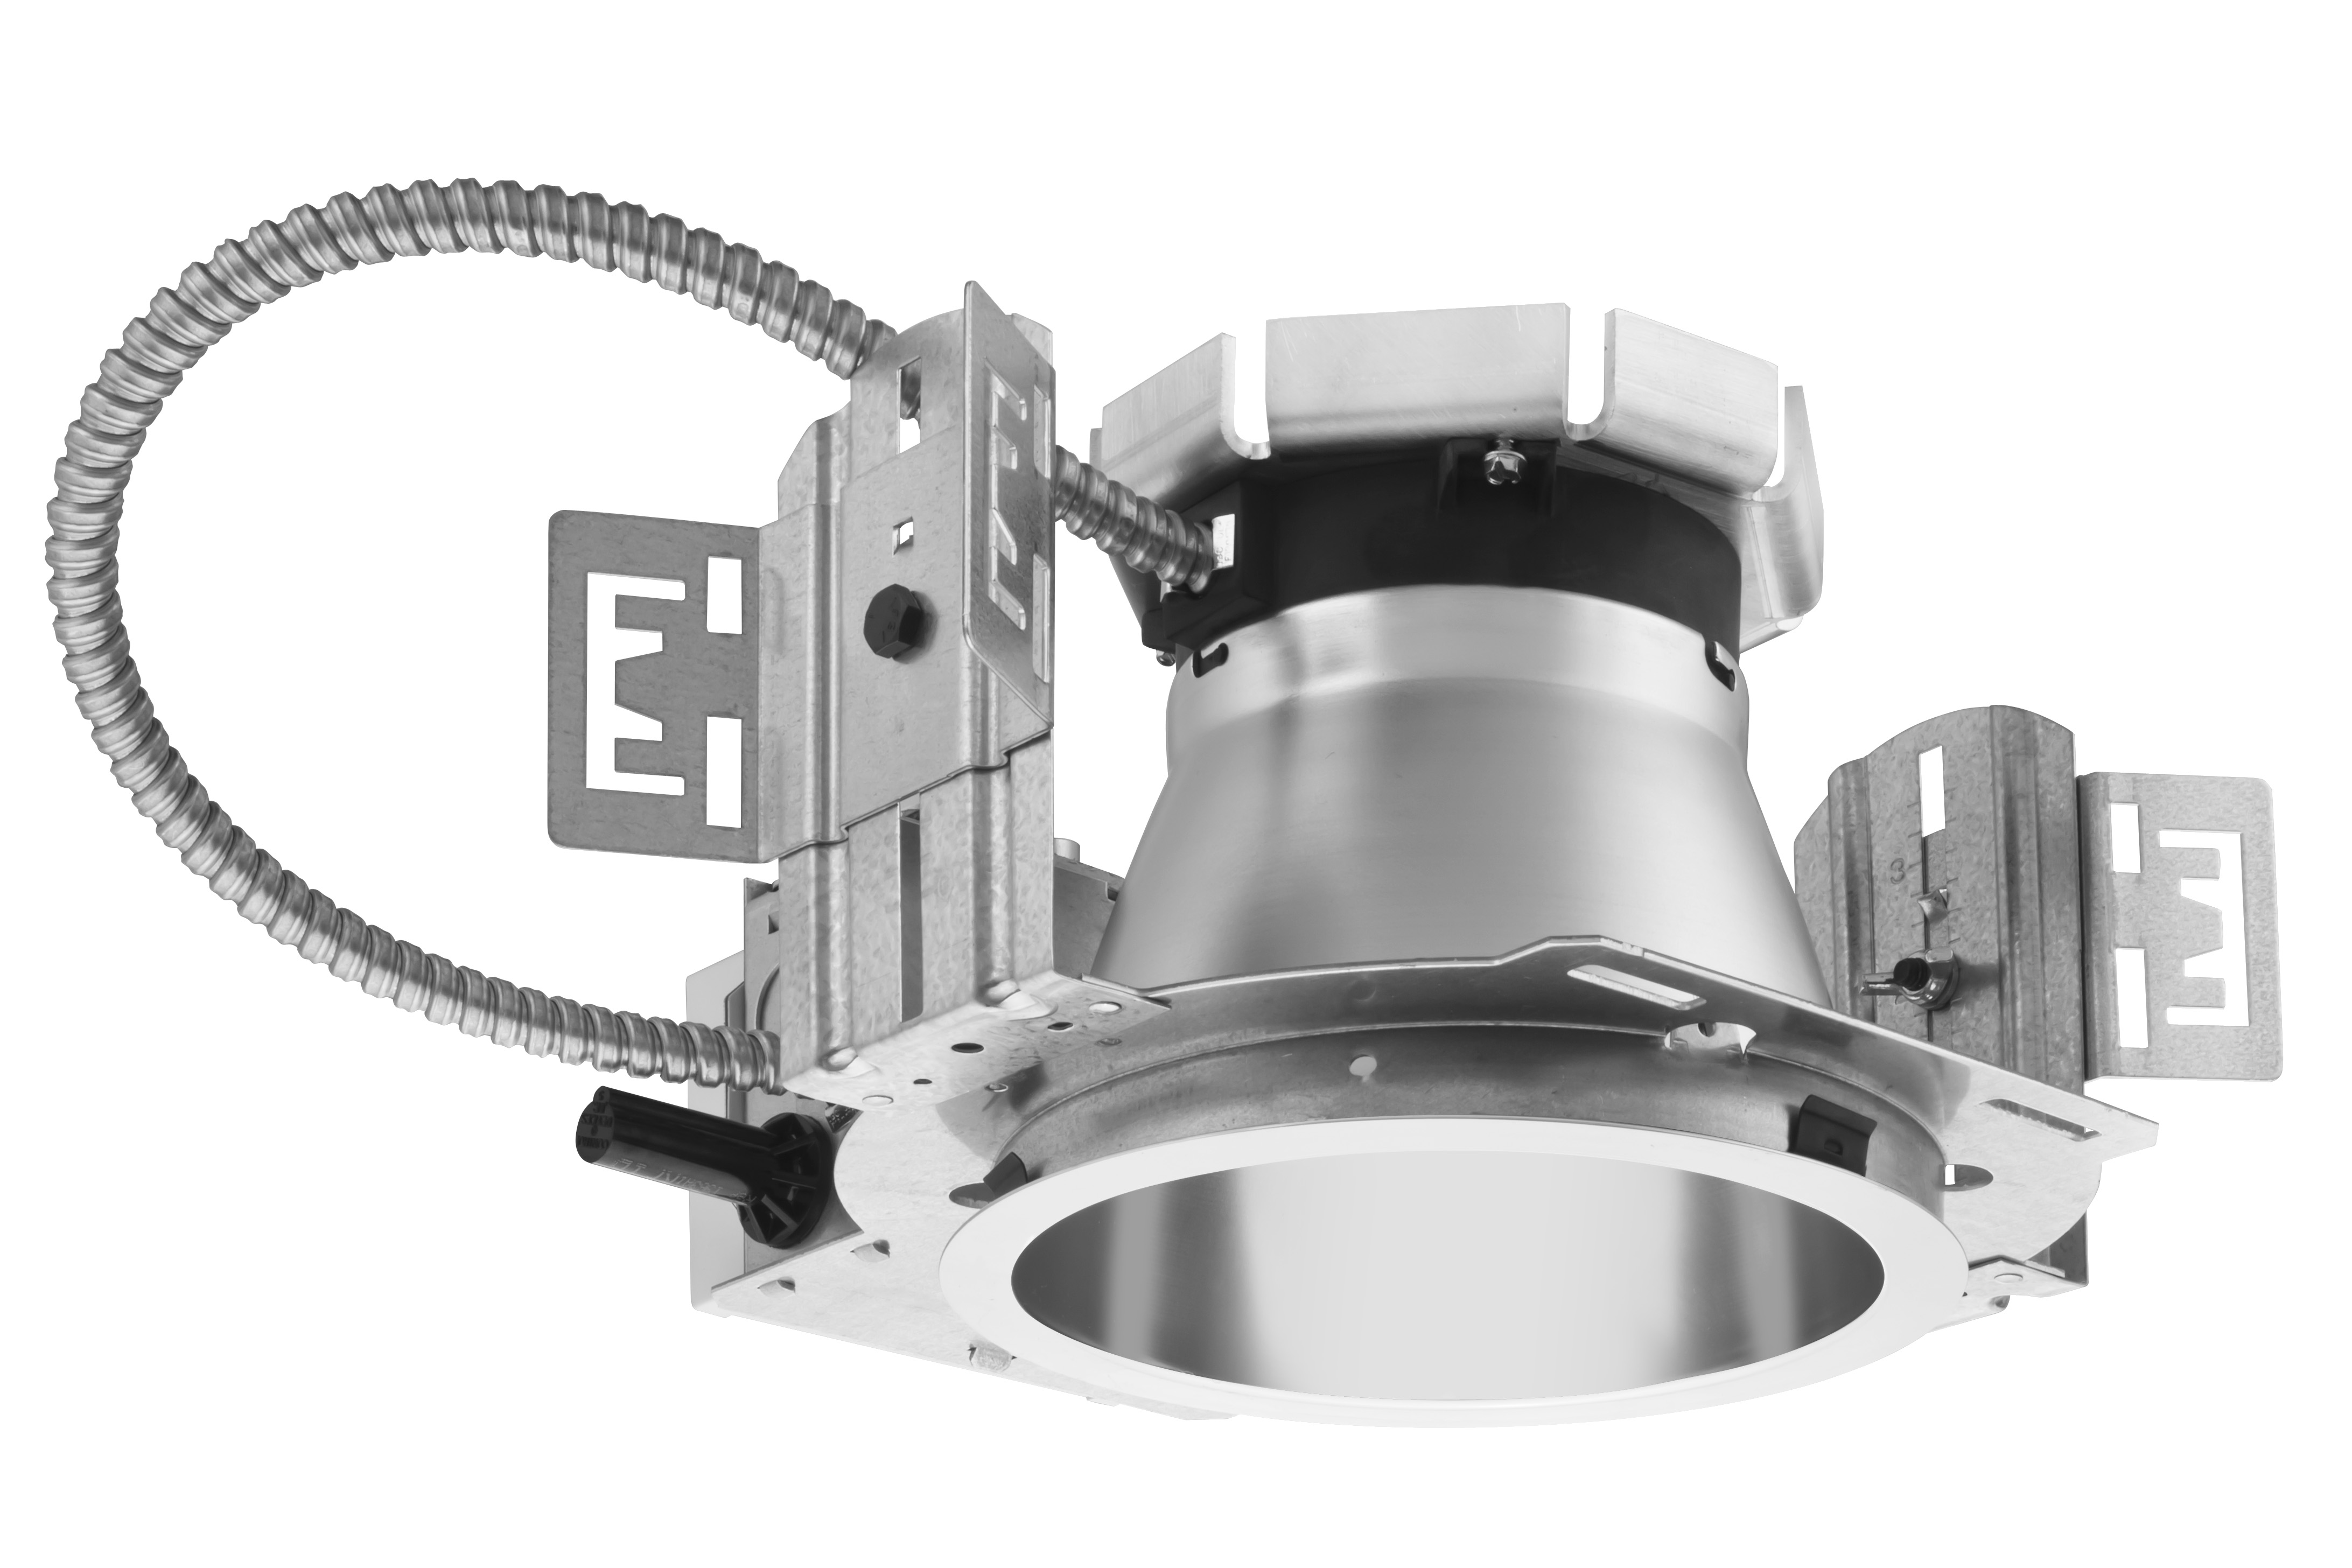 LDN635/10120HSG LITHONIA 6 LED NEW CONSTRUCTION COMMERCIAL DOWNLIGHT, 3500K, 1000 LUMENS, 120V, HOUSING (CI# 224H16) 82047682990